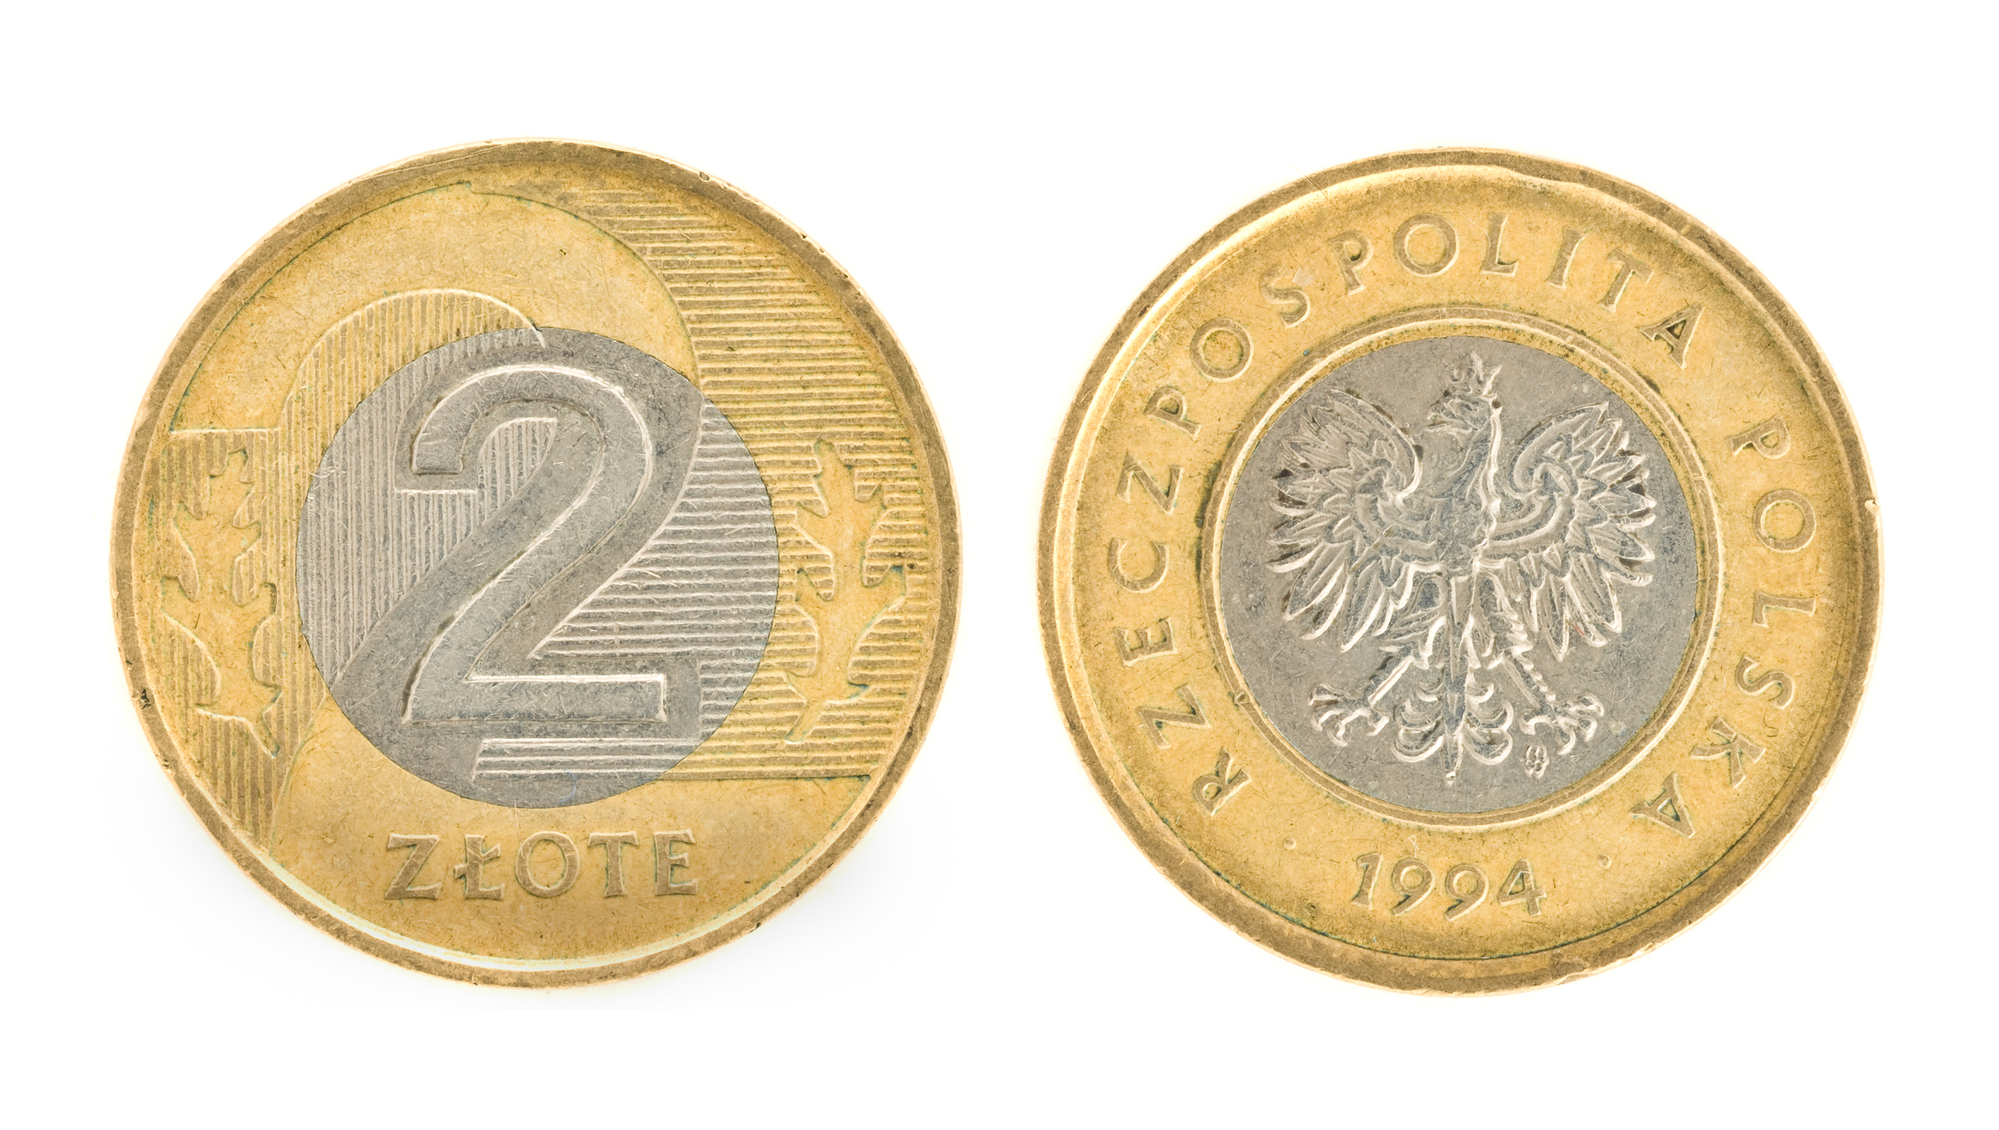 2-zloty-coin-poland-currency-money